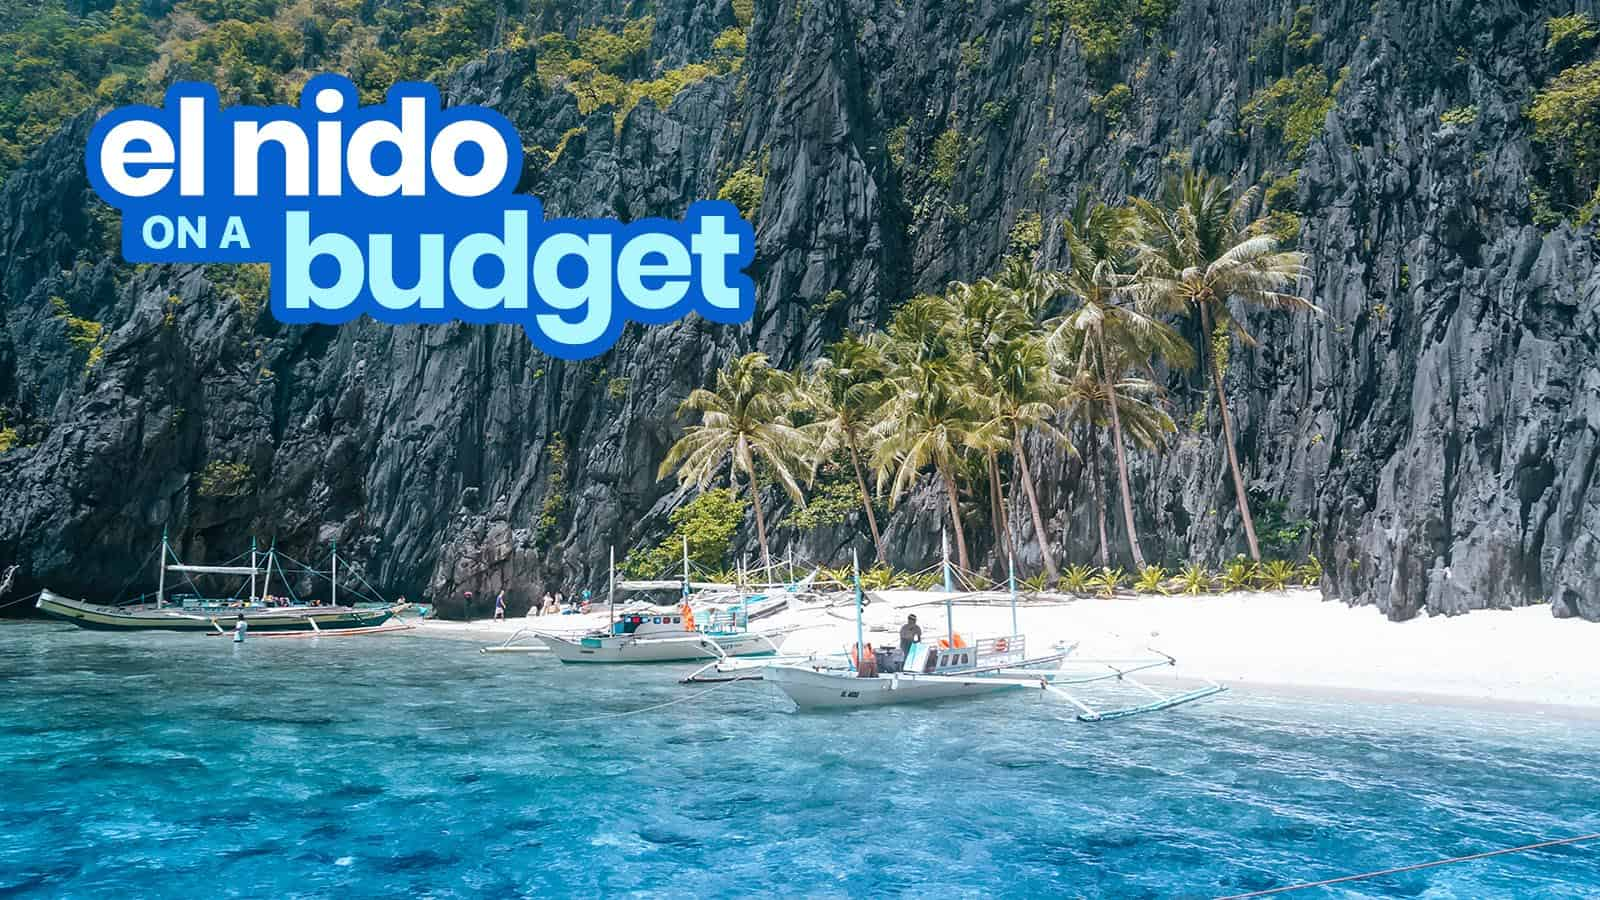 El Nido Palawan Travel Guide With